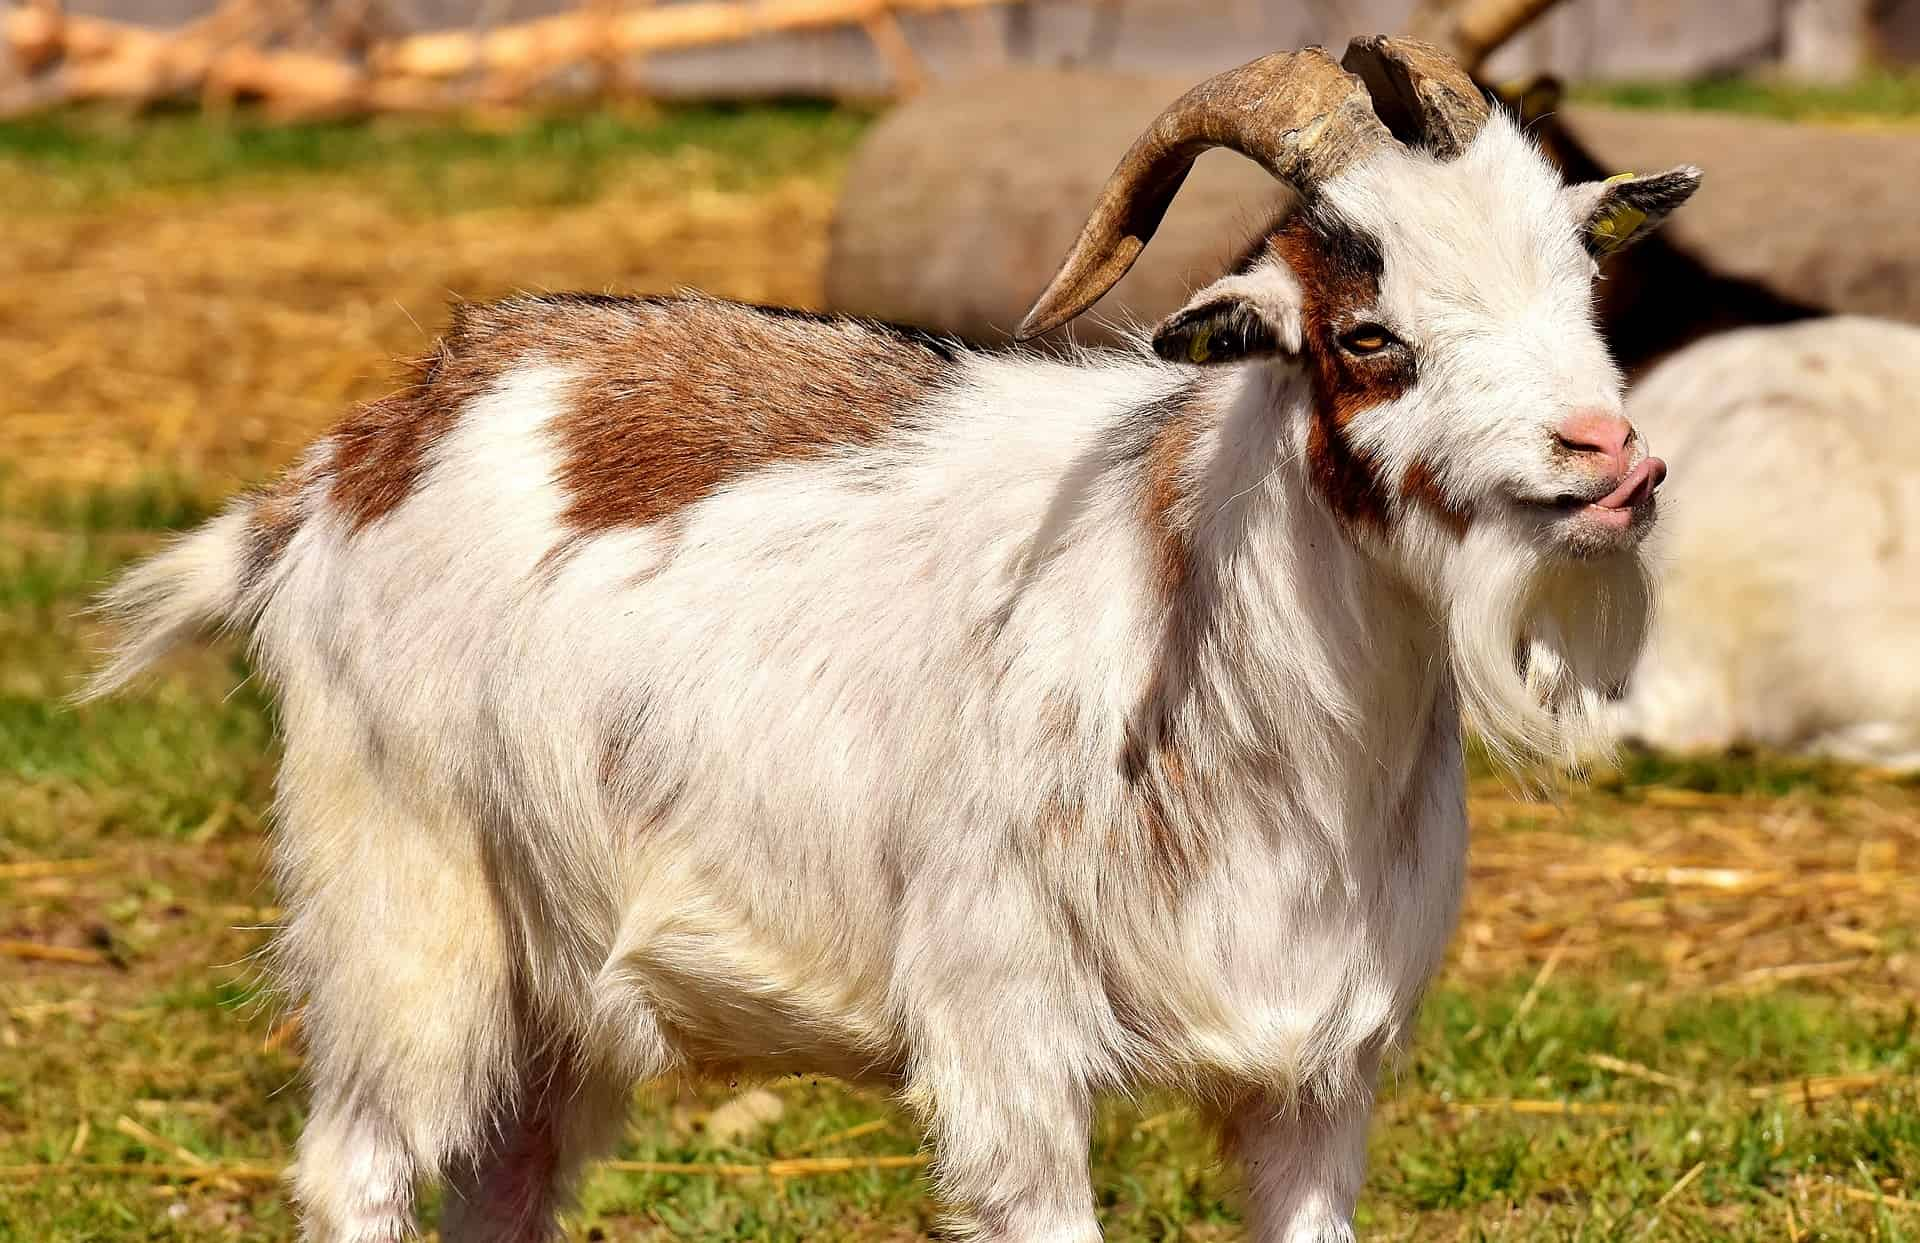 male goat wagging tongue as a sign of being in rut